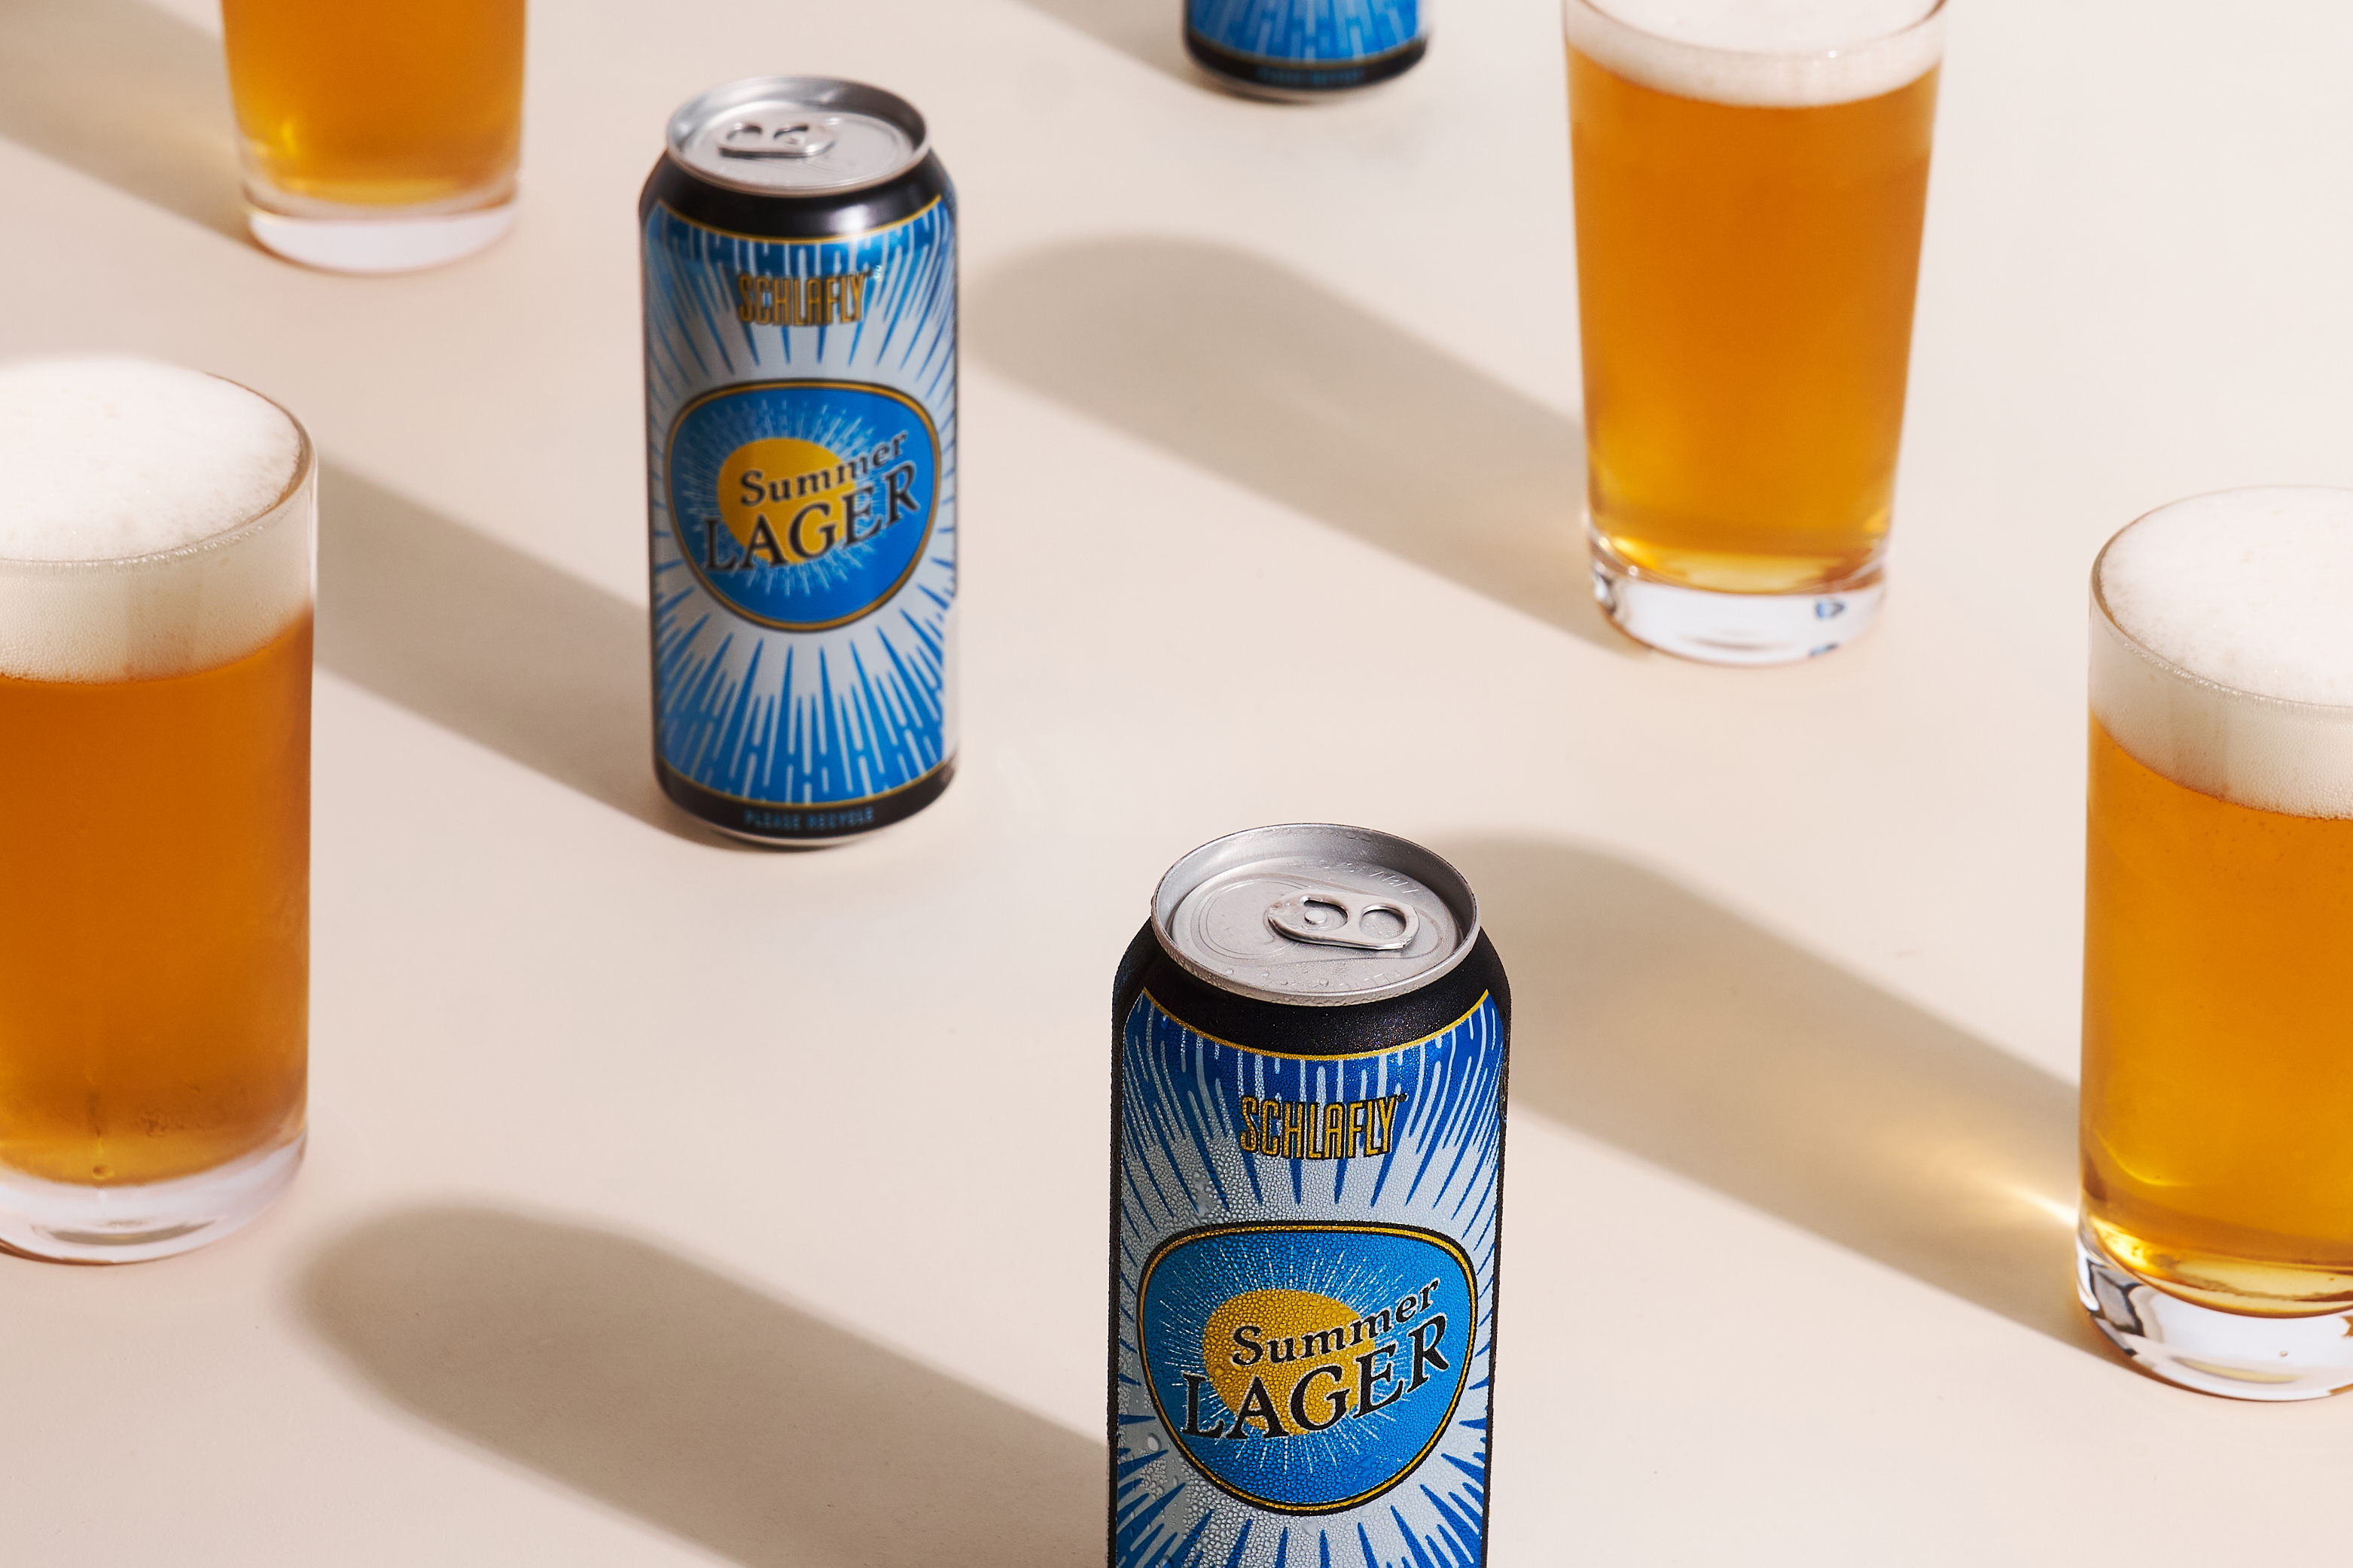 Schlafly's Summer Lager Smoothly Racks Up 25+ Years of Quenching Summer Thirst